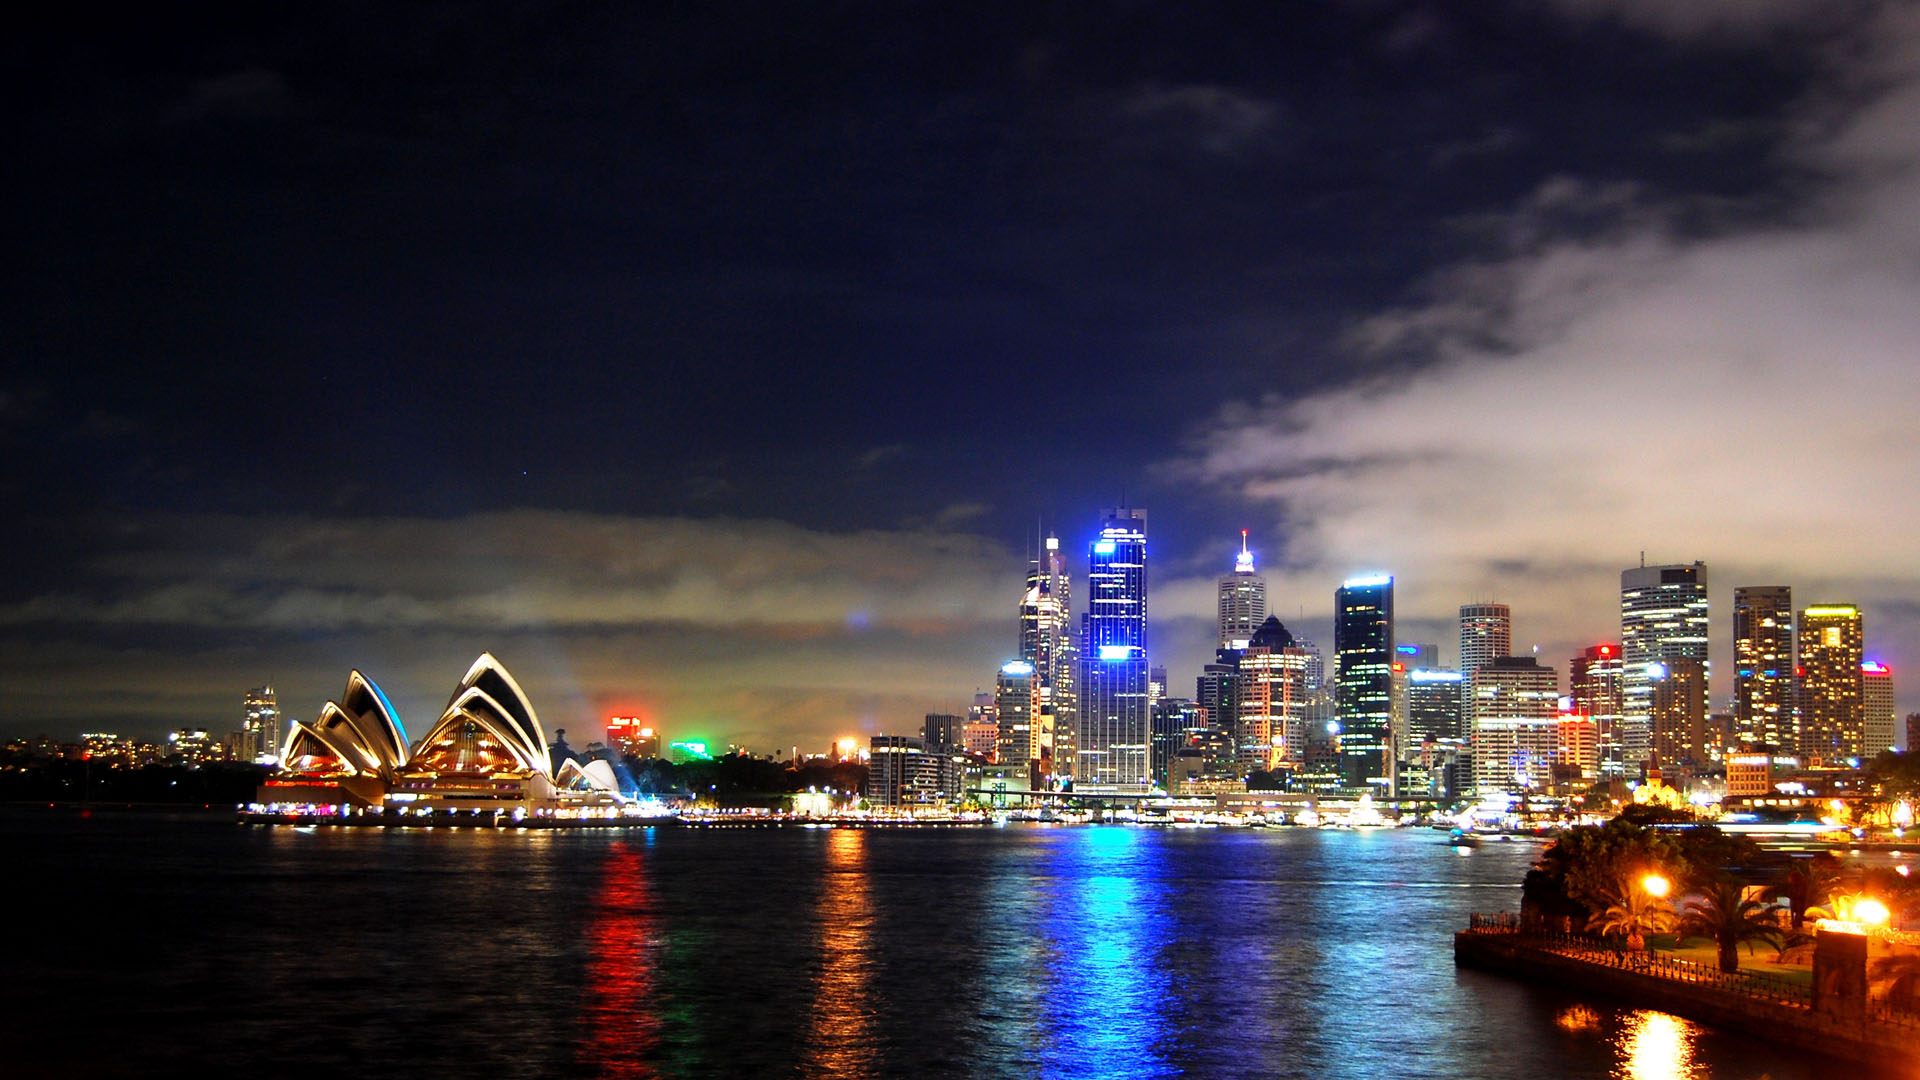 File:Sydney-harbour-bei-nacht-wallpaper.JPG - Wikimedia Commons